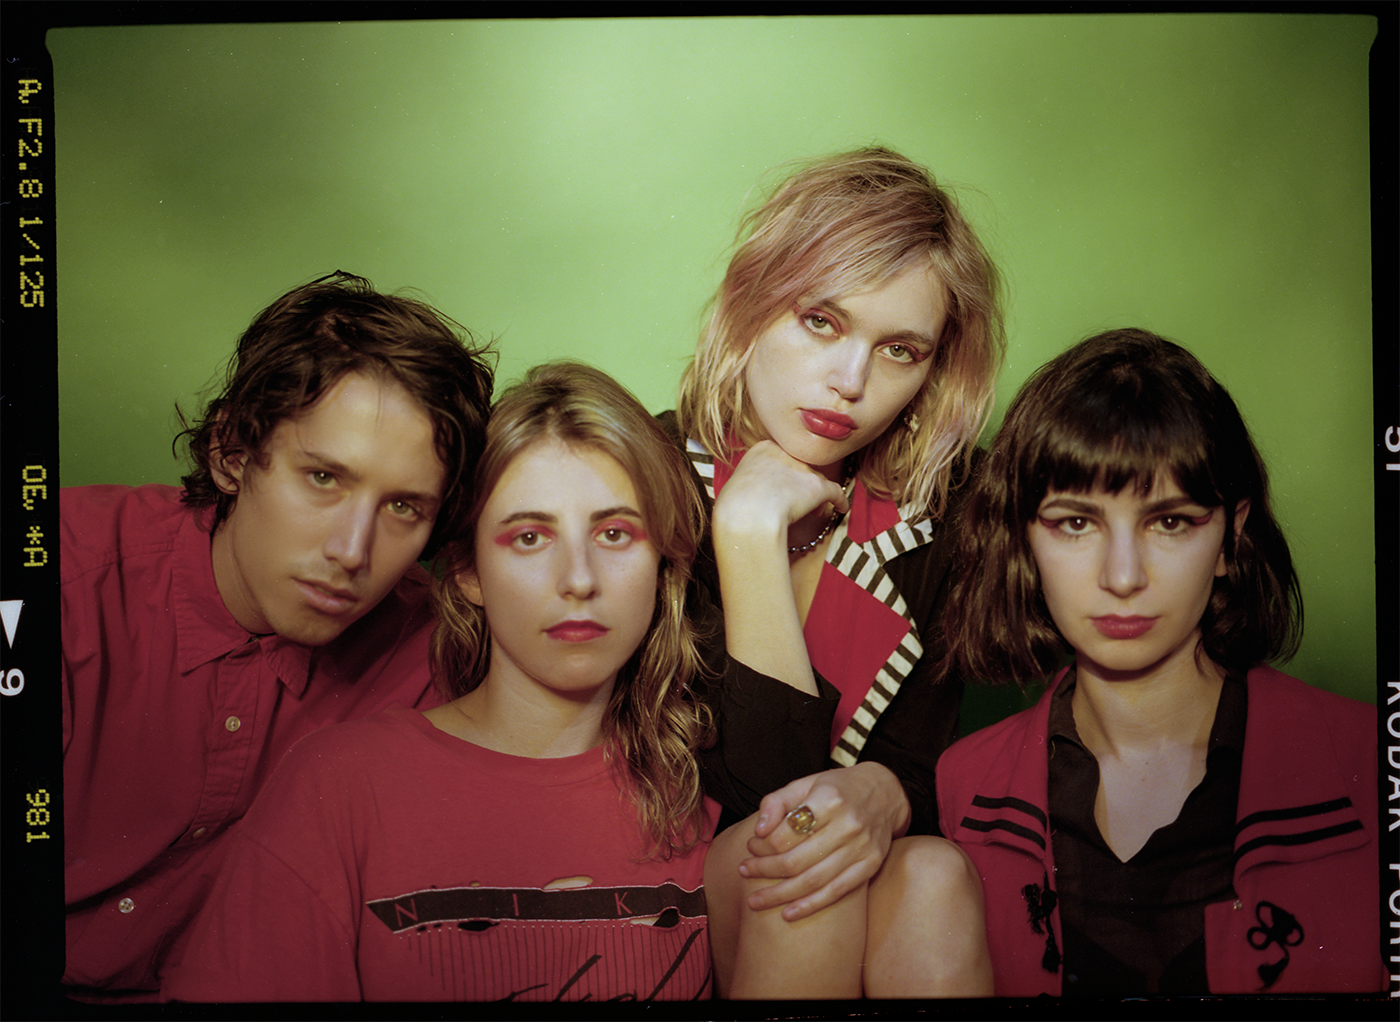 The Paranoyds lineup is all very close. Having met in highschool, they became best friends.